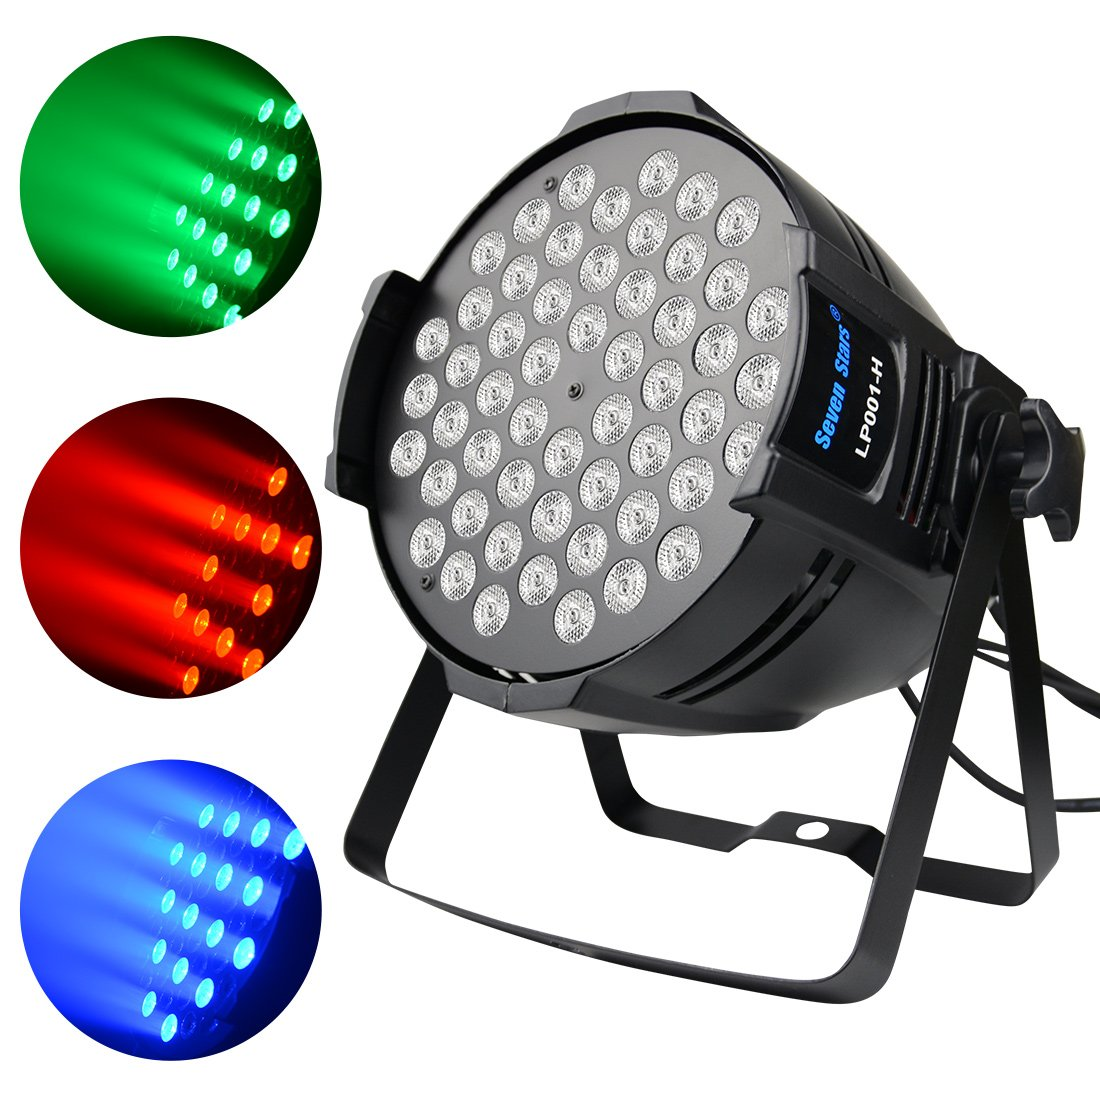 DJ PAR Light 180W RGBW LED Stage Lights 4/8 Channel DMX 512 Stage Lighting Self-supporting for DJ Wedding Party Church Concert Dance Stage Music Events